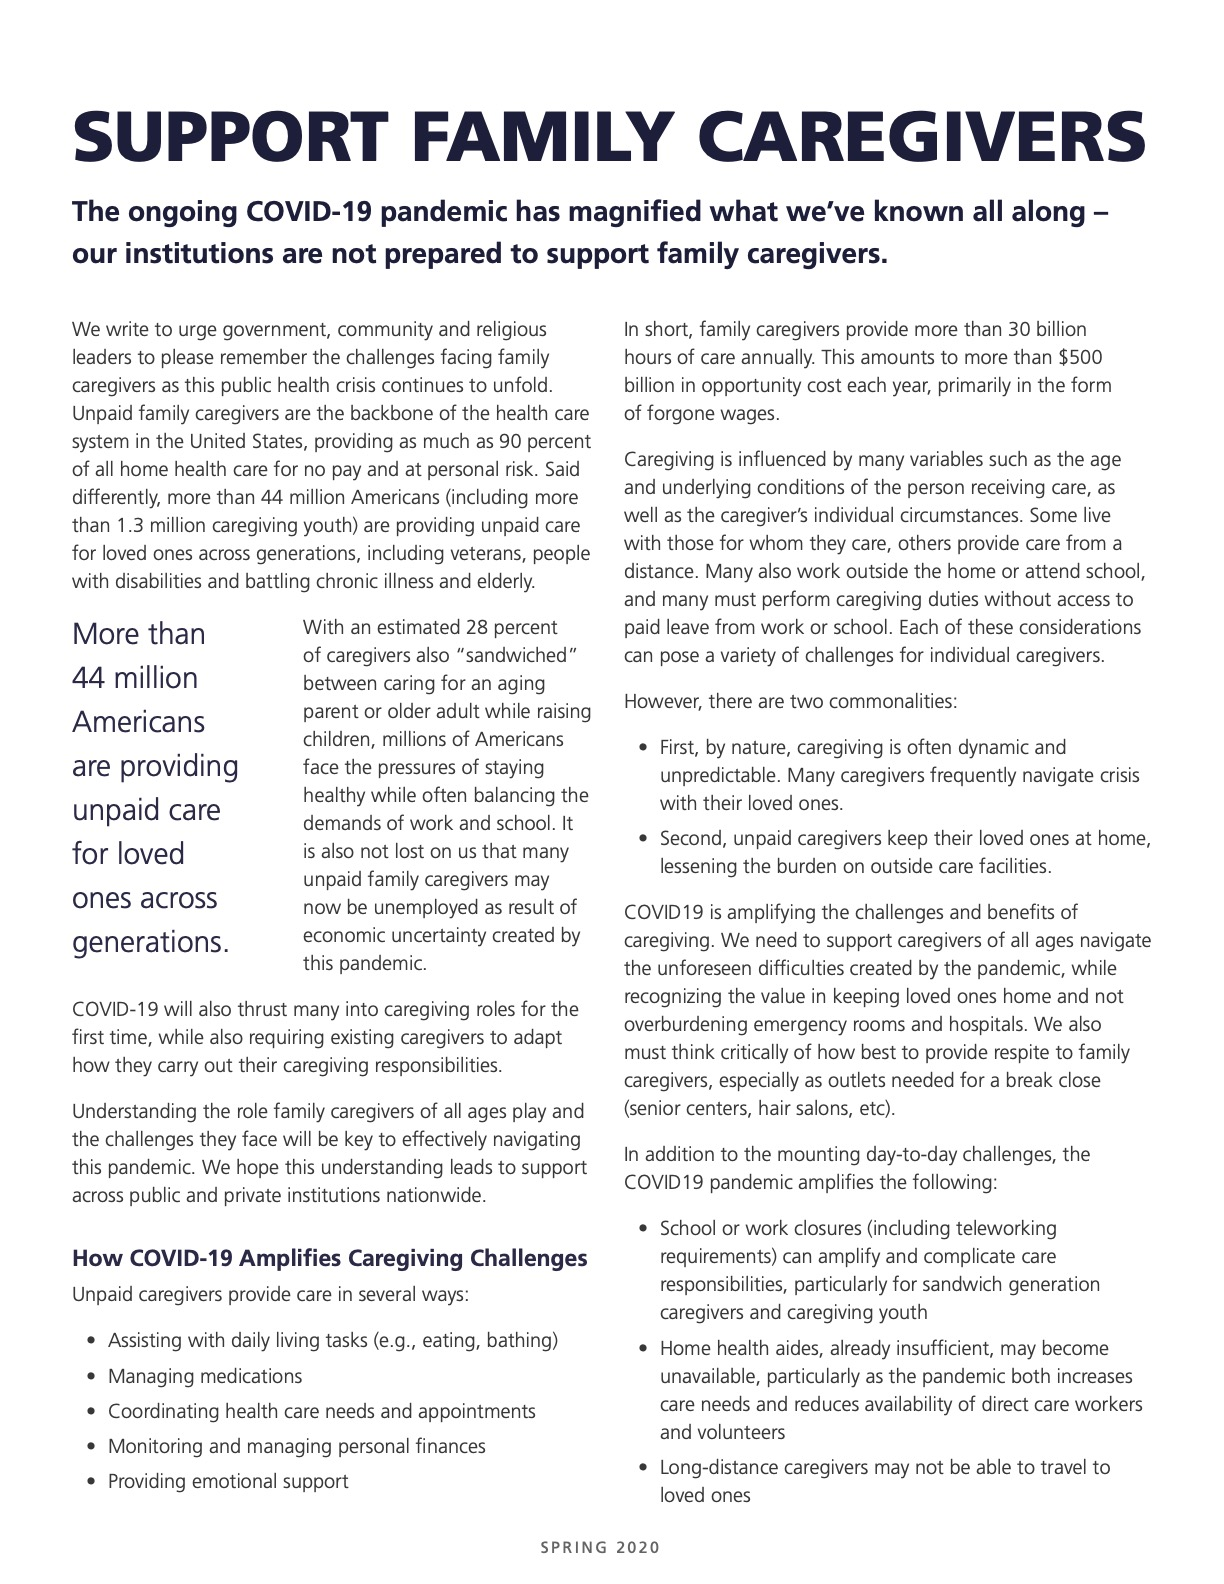 Caregiver COVID-19 Group Statement